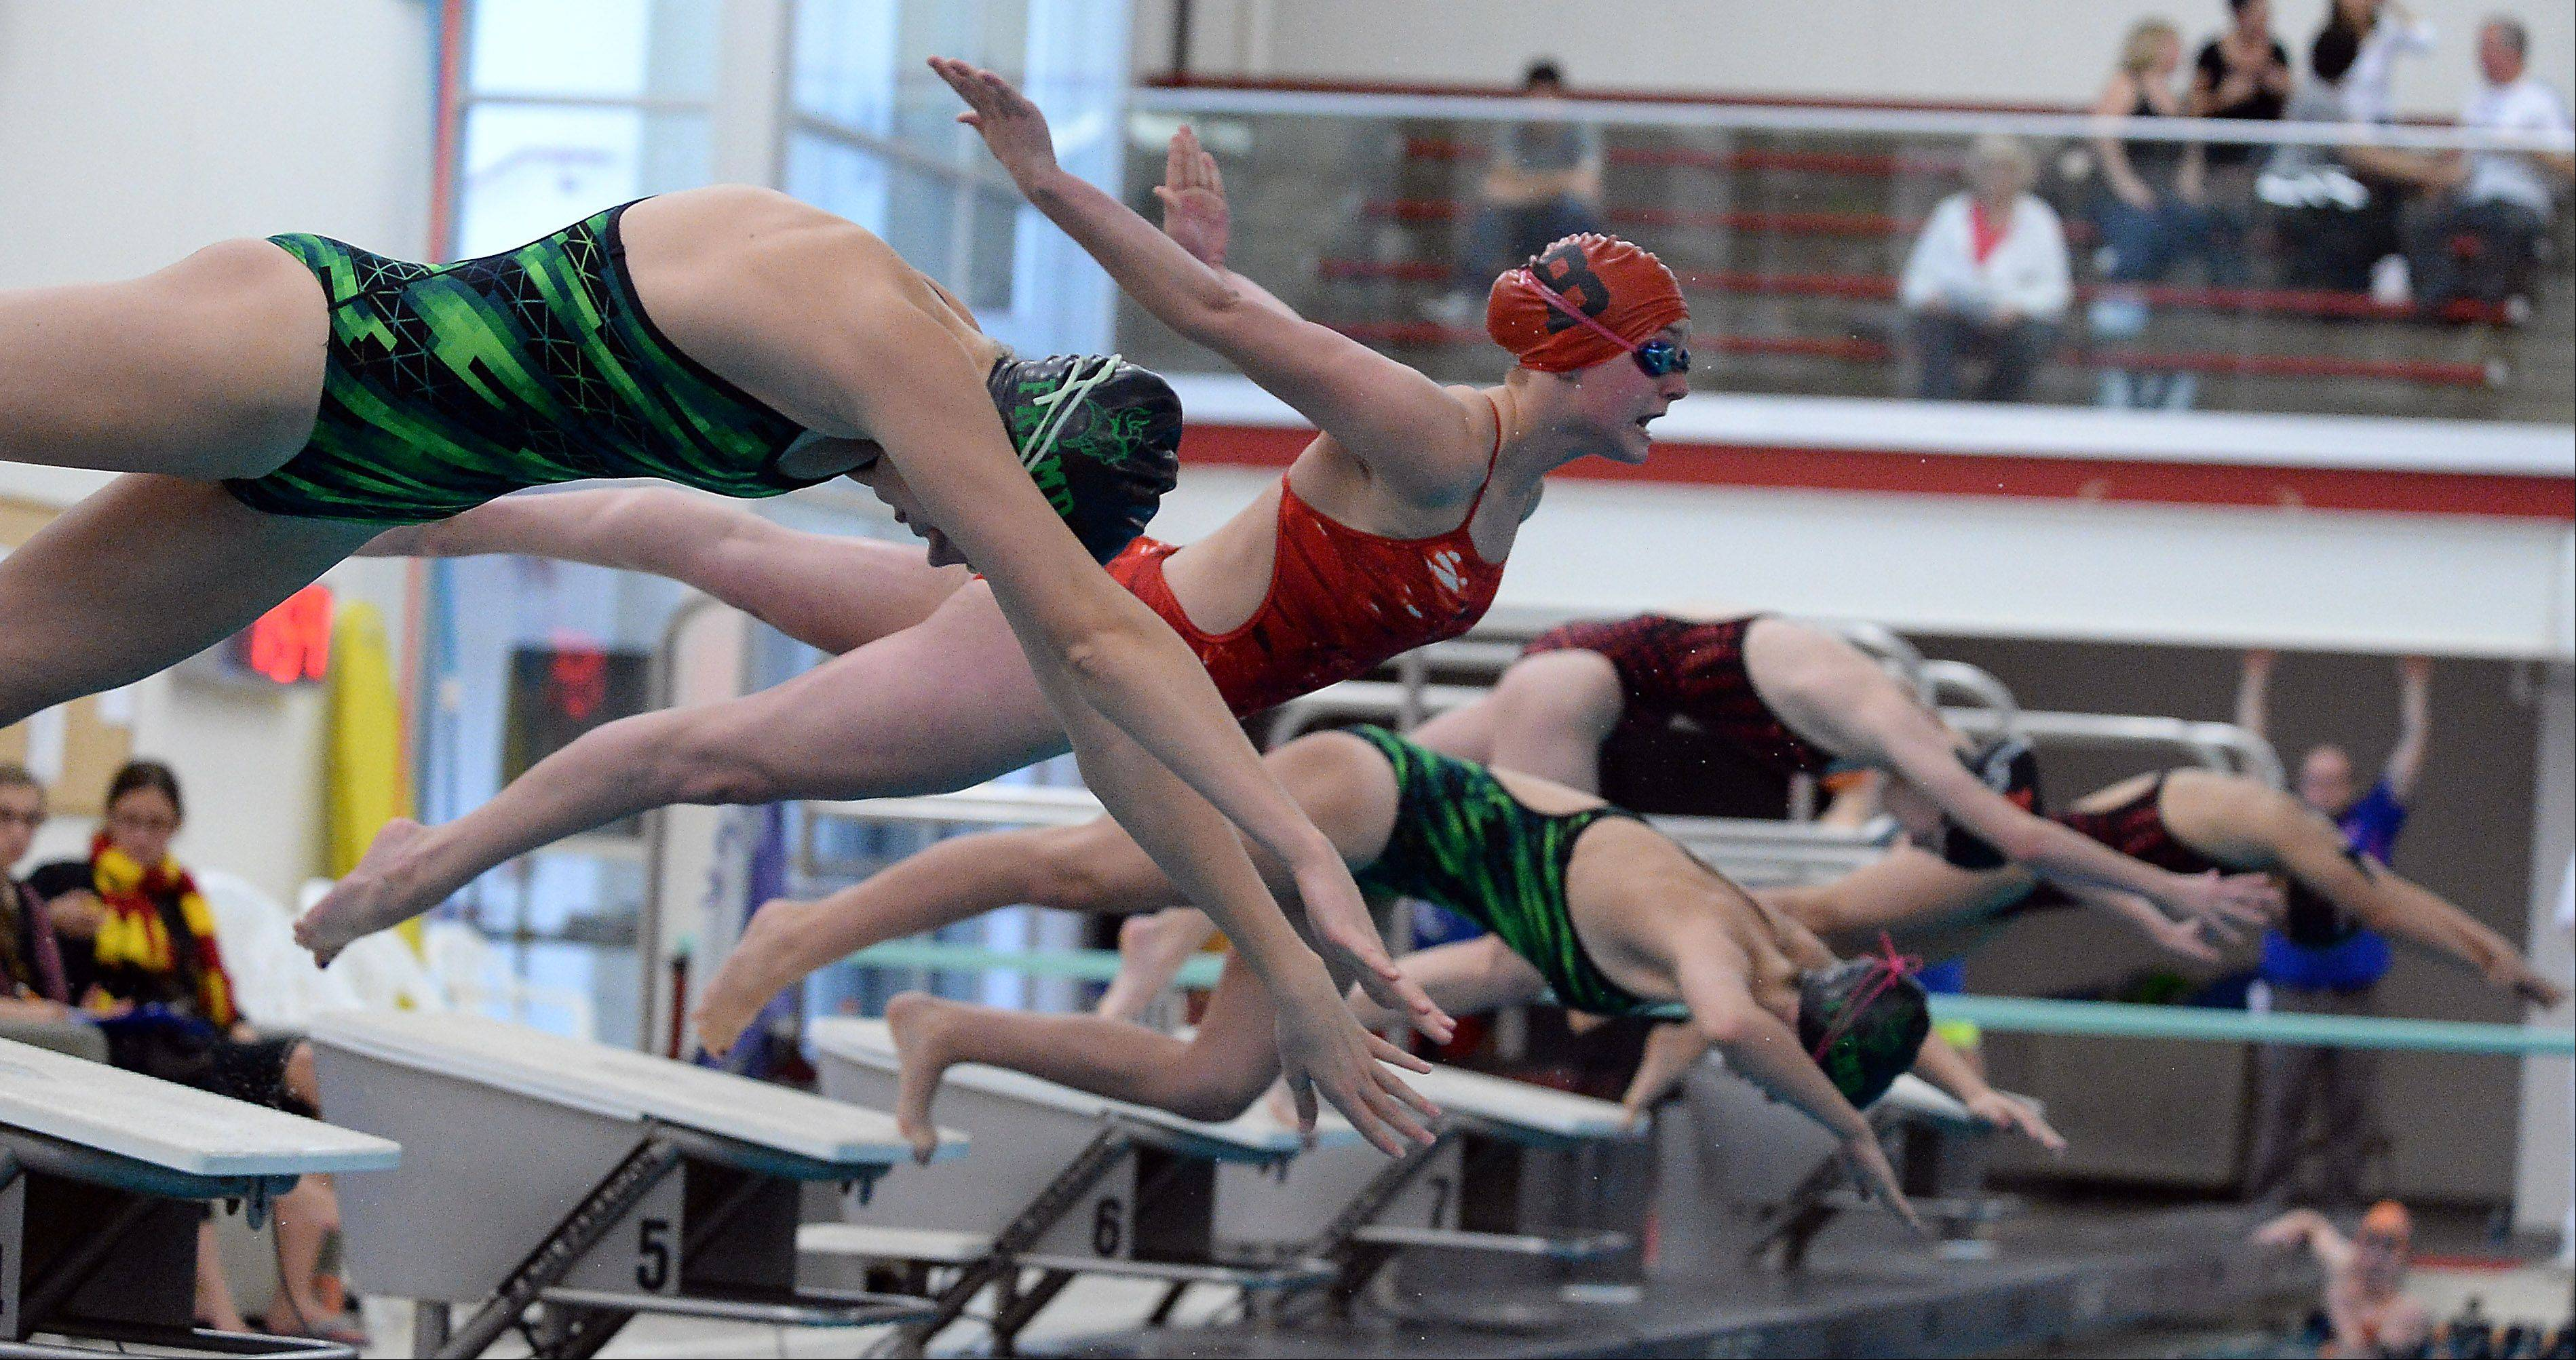 Barrington's Mekenna Scheitlin, second from left, takes flight at the start of the 100-yard freestyle event during Saturday's Mid Suburban League swimming championshipsin Barrington.